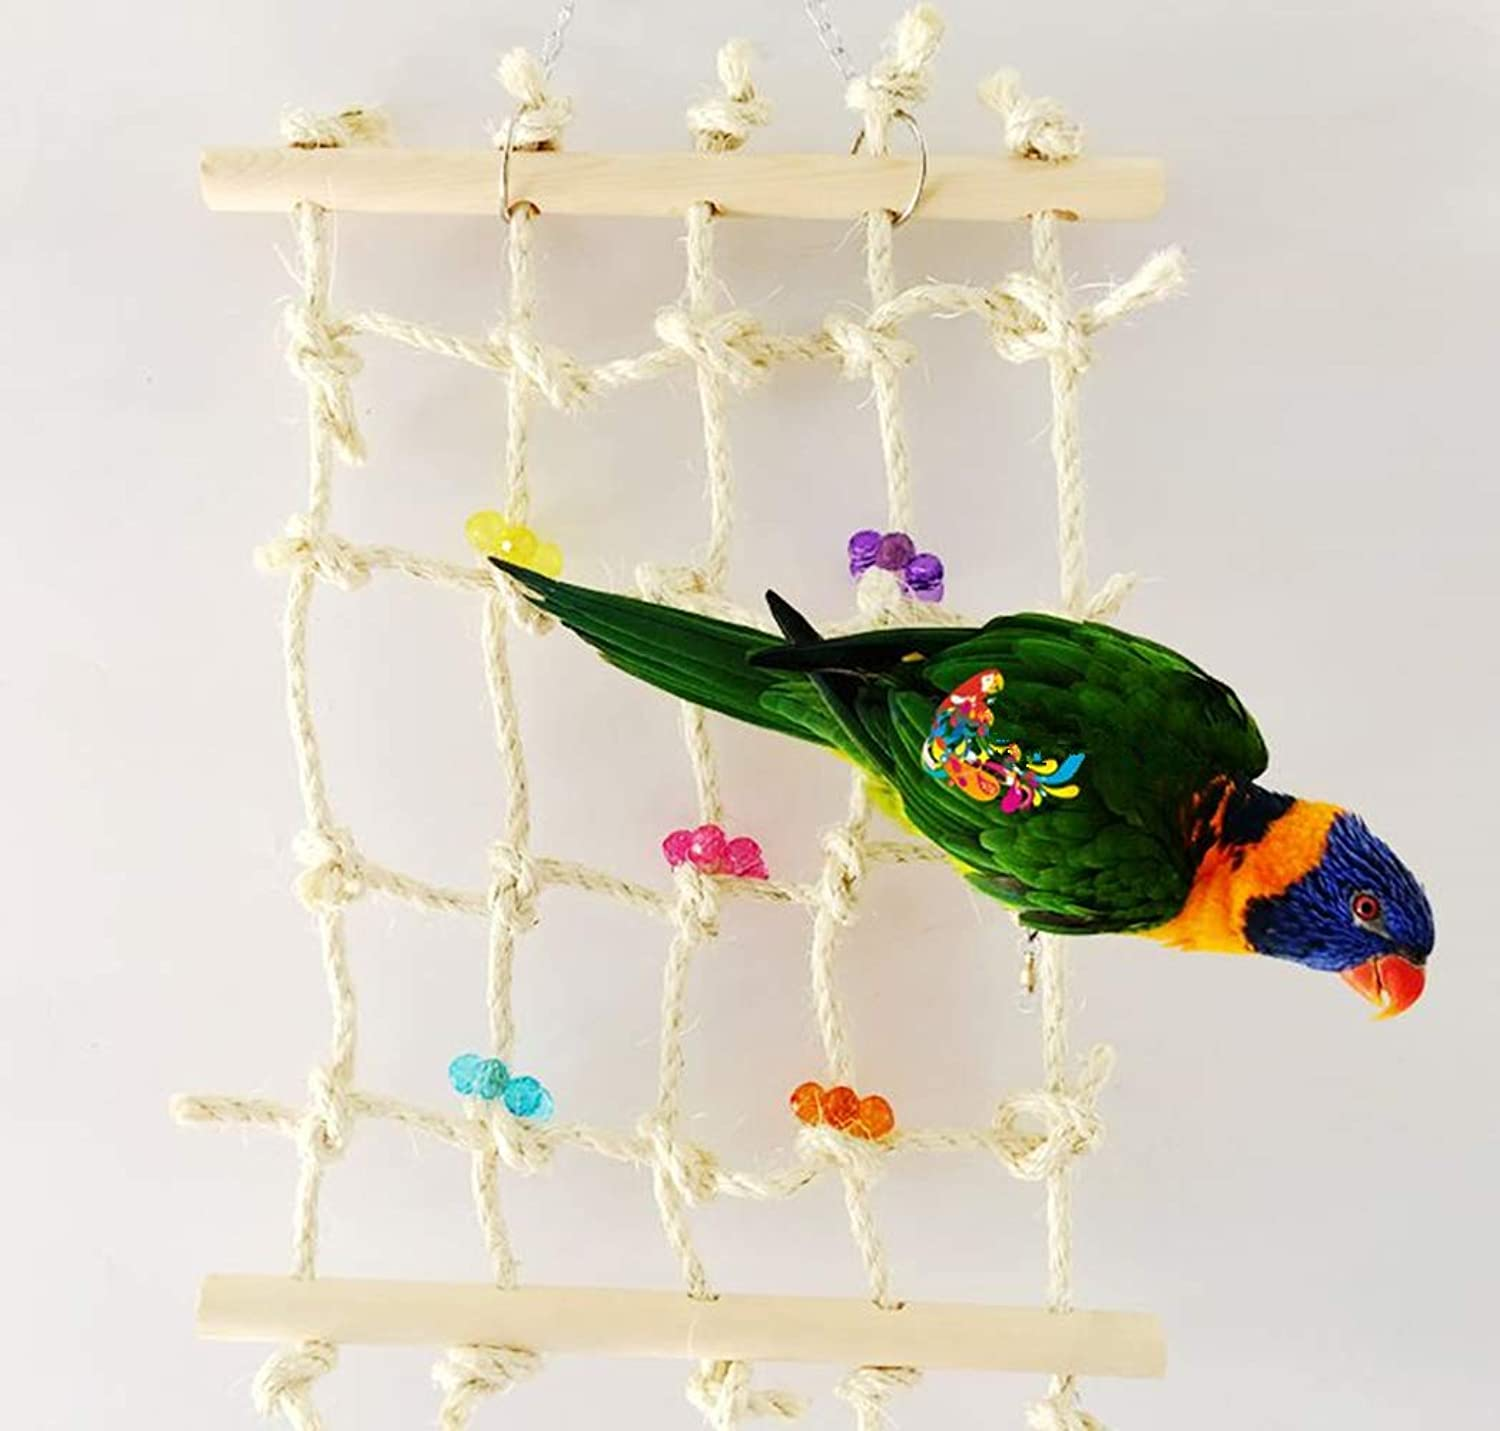 Ecoolbuy 40cm 15inch Acrylic Rope Net Swing Ladder Toy Pet Parred Birds Chew Play Climbing